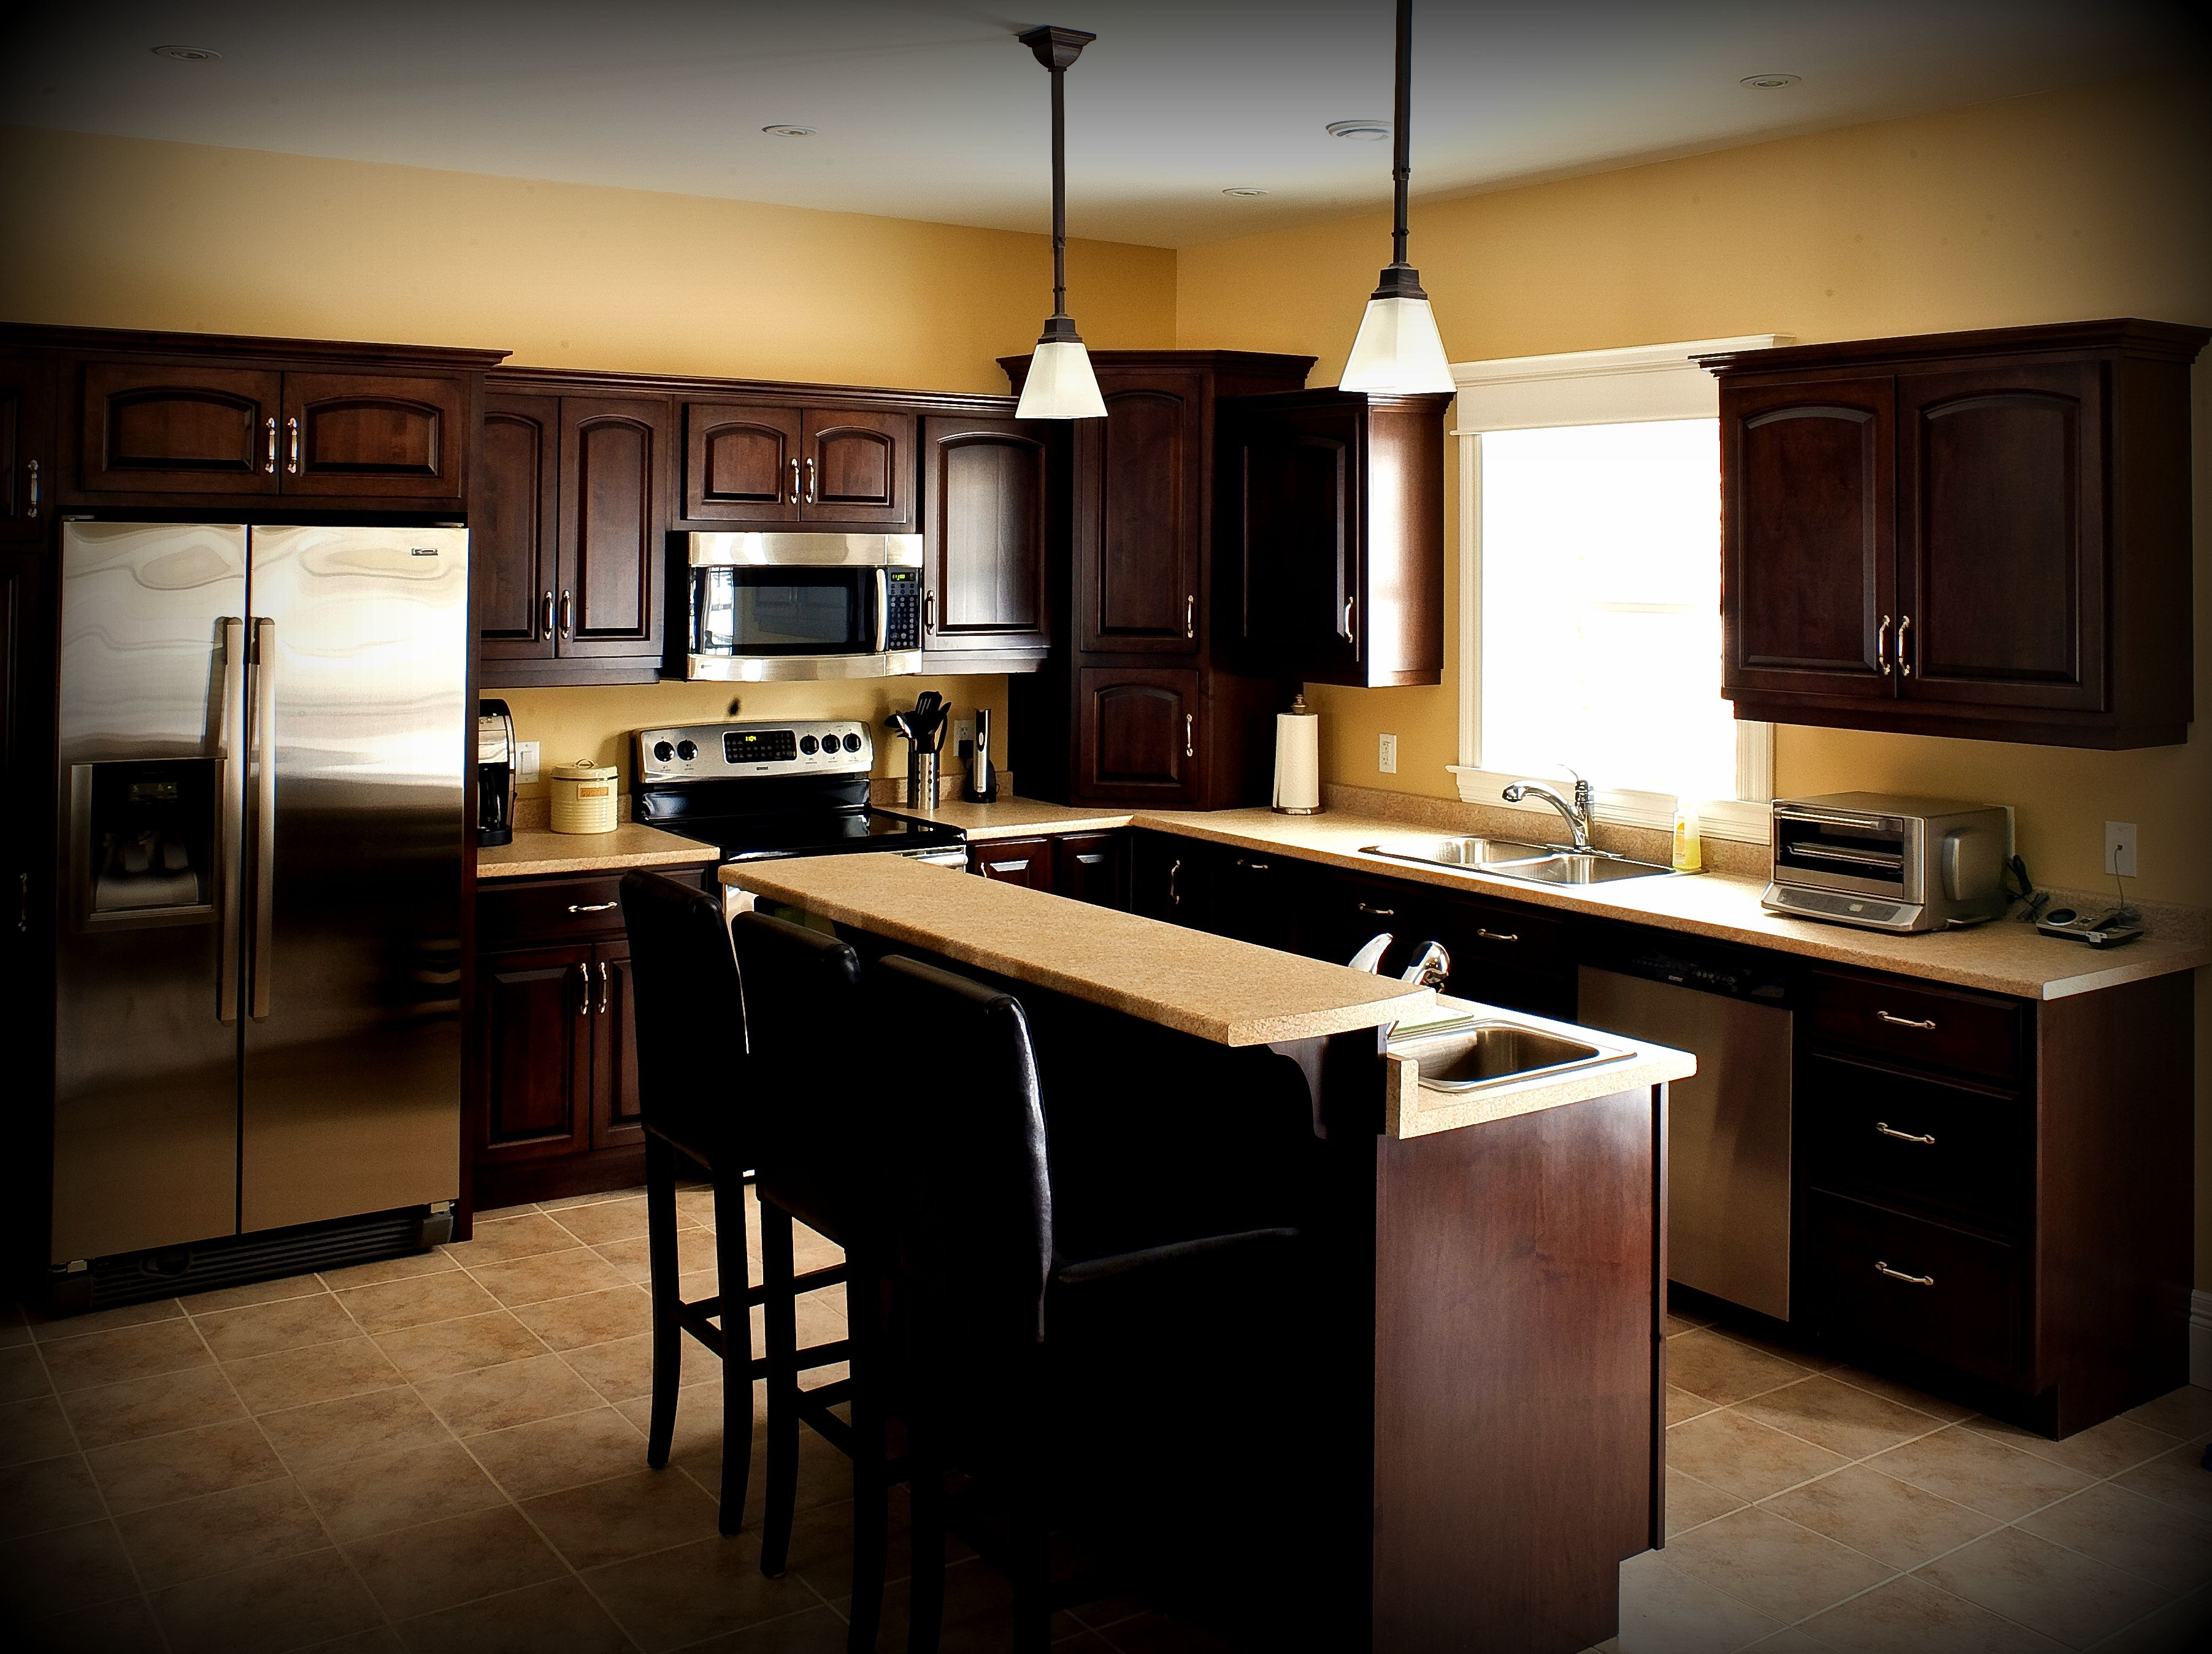 Island Cabinet Shop quality built kitchen cabinets, supplied by ...